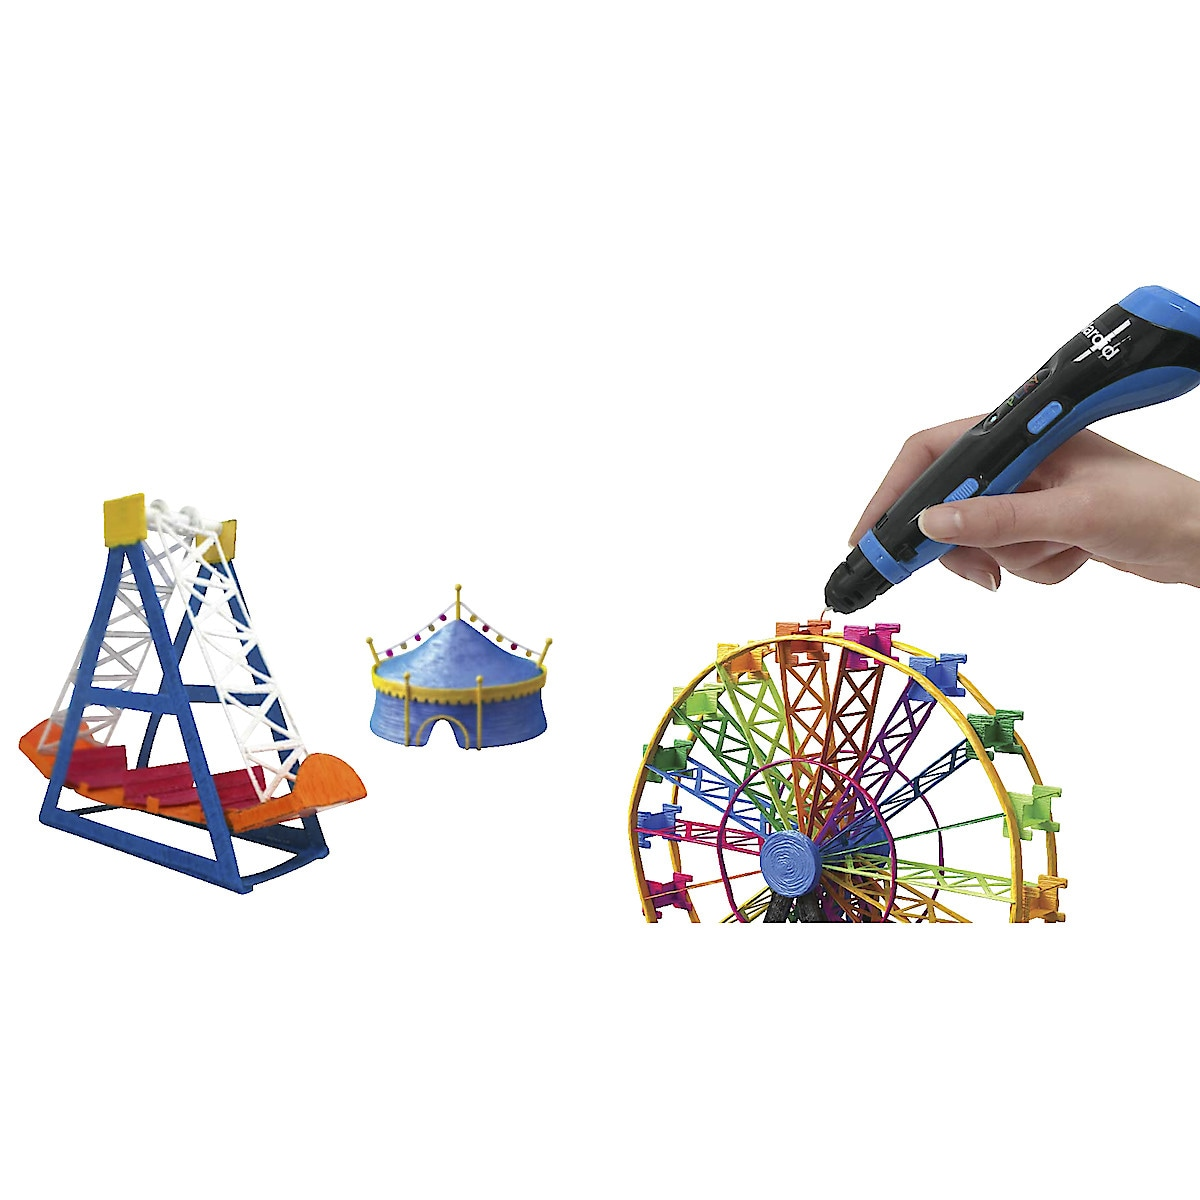 3D-penna Polaroid Play 3D Pen